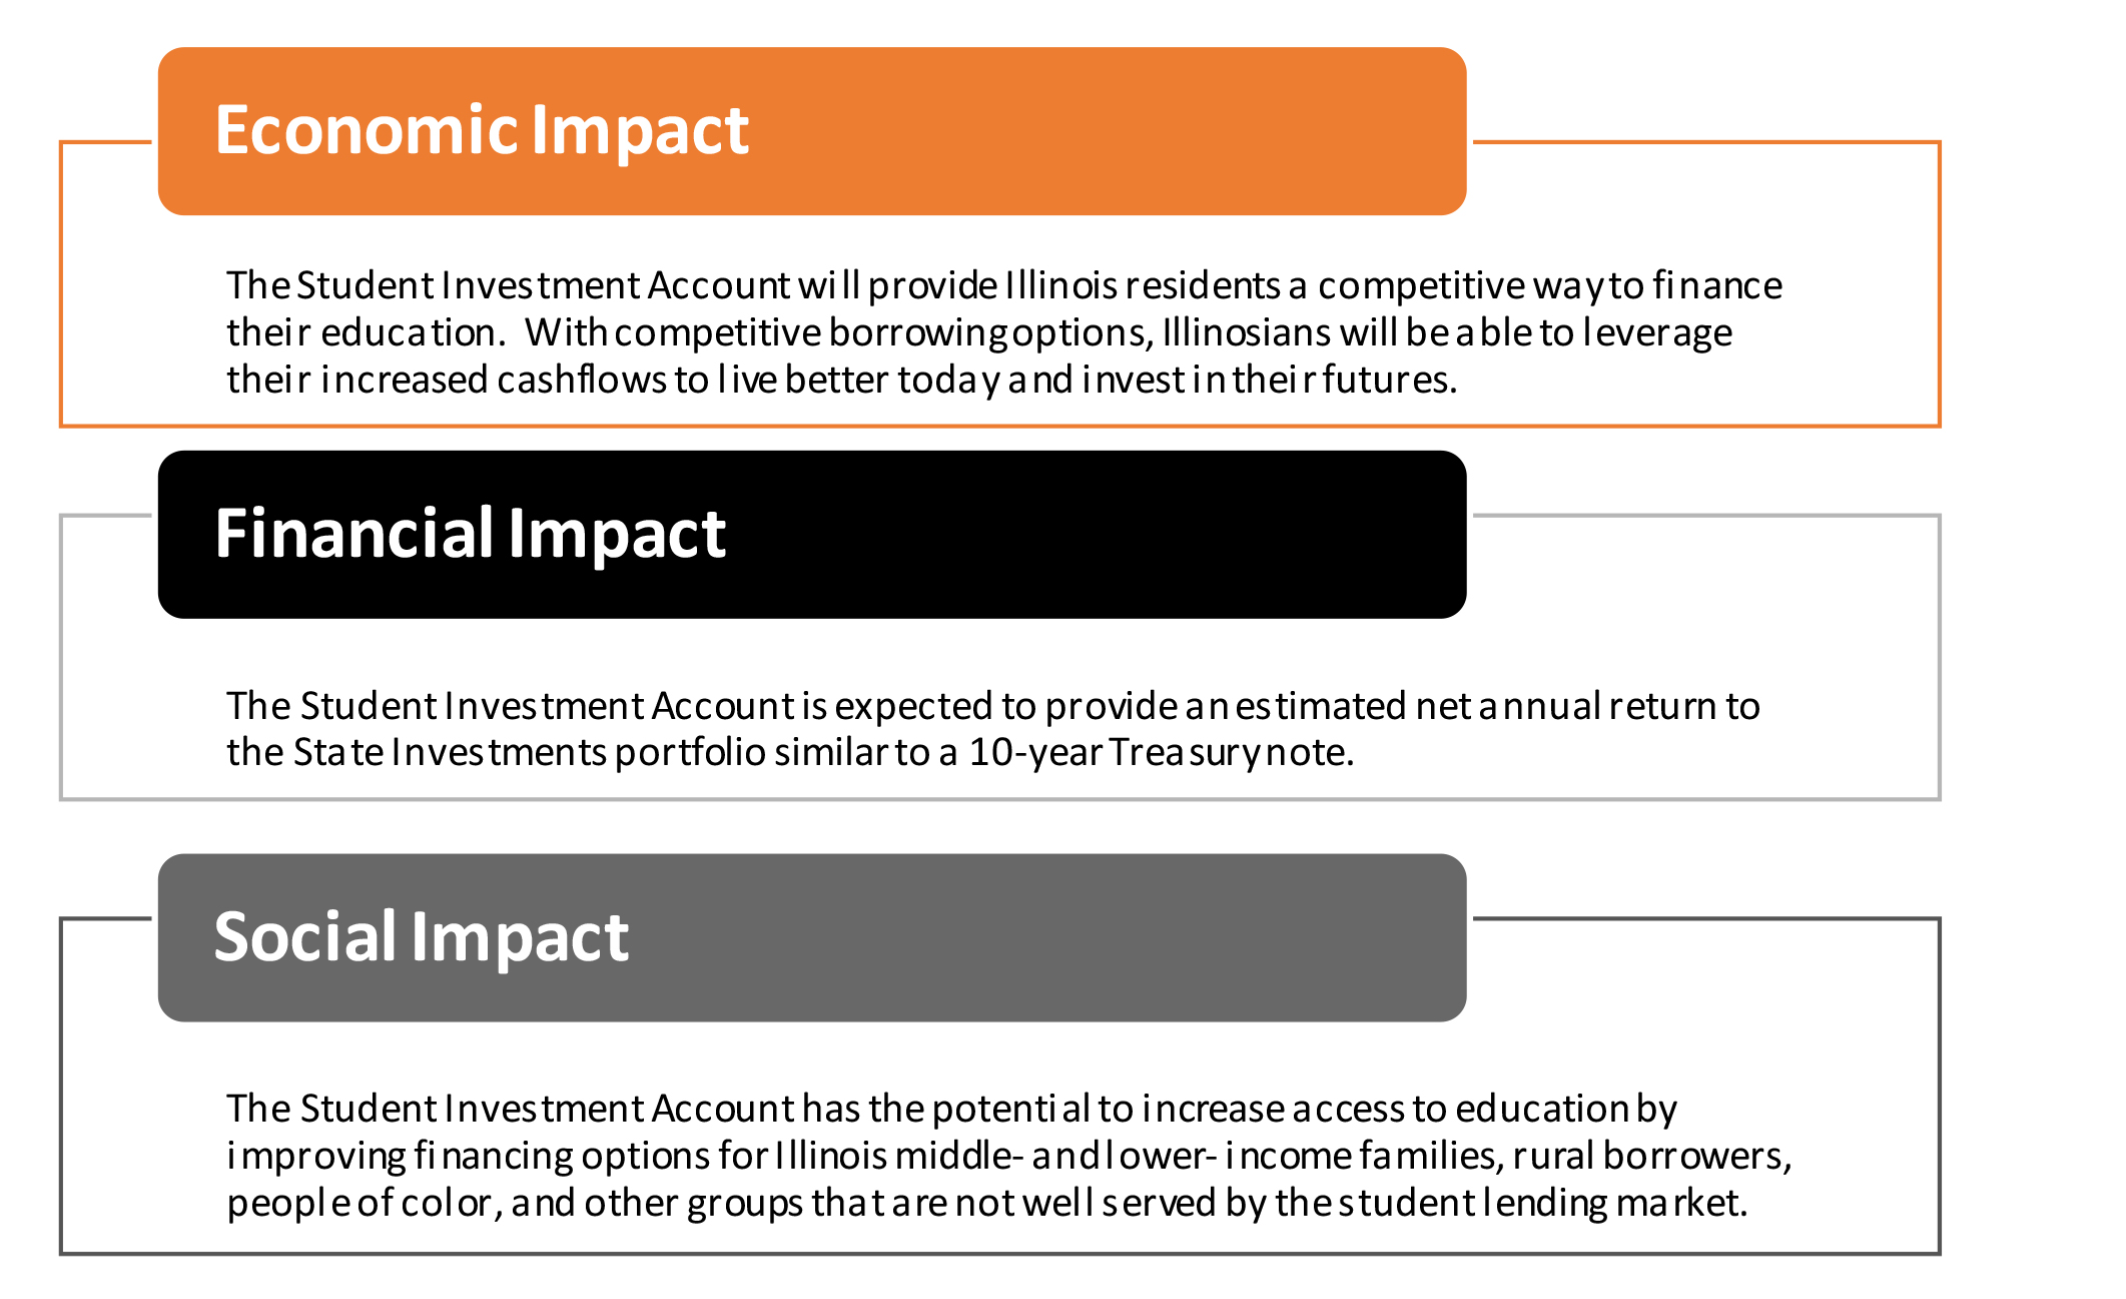 Economic, Financial and Social Impact of Student Investment Account Aims